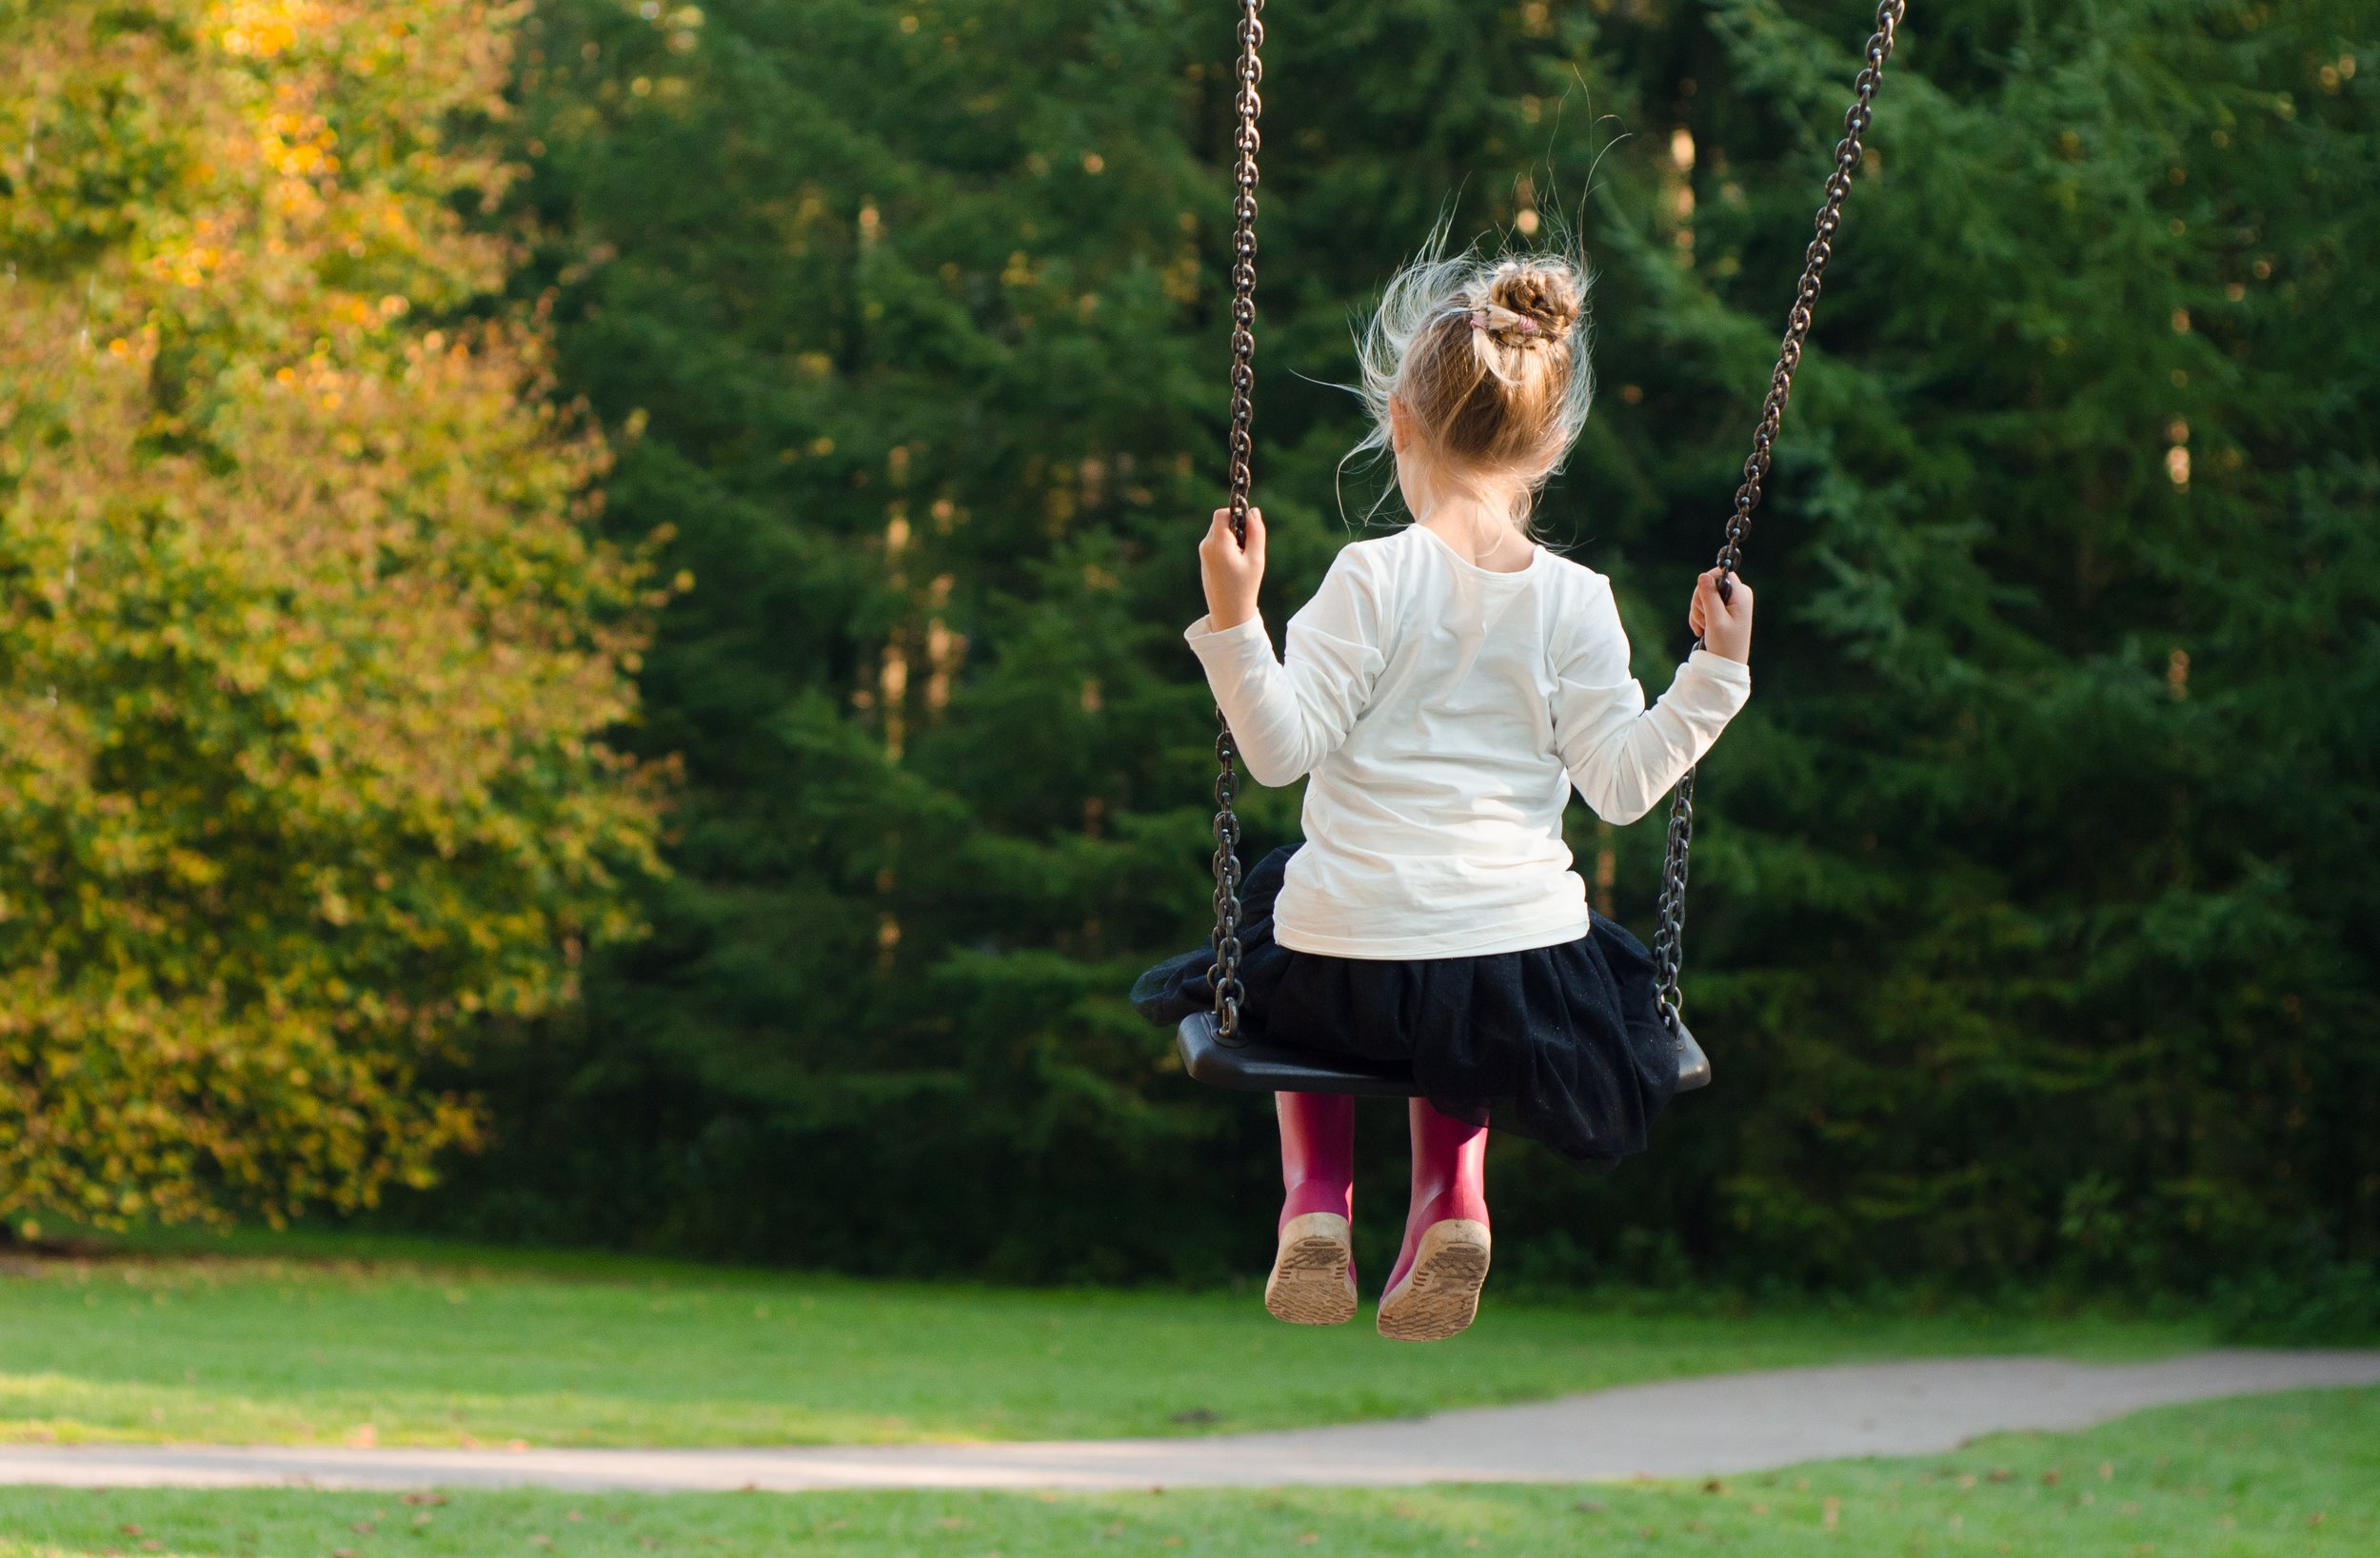 Girl child alone on swing